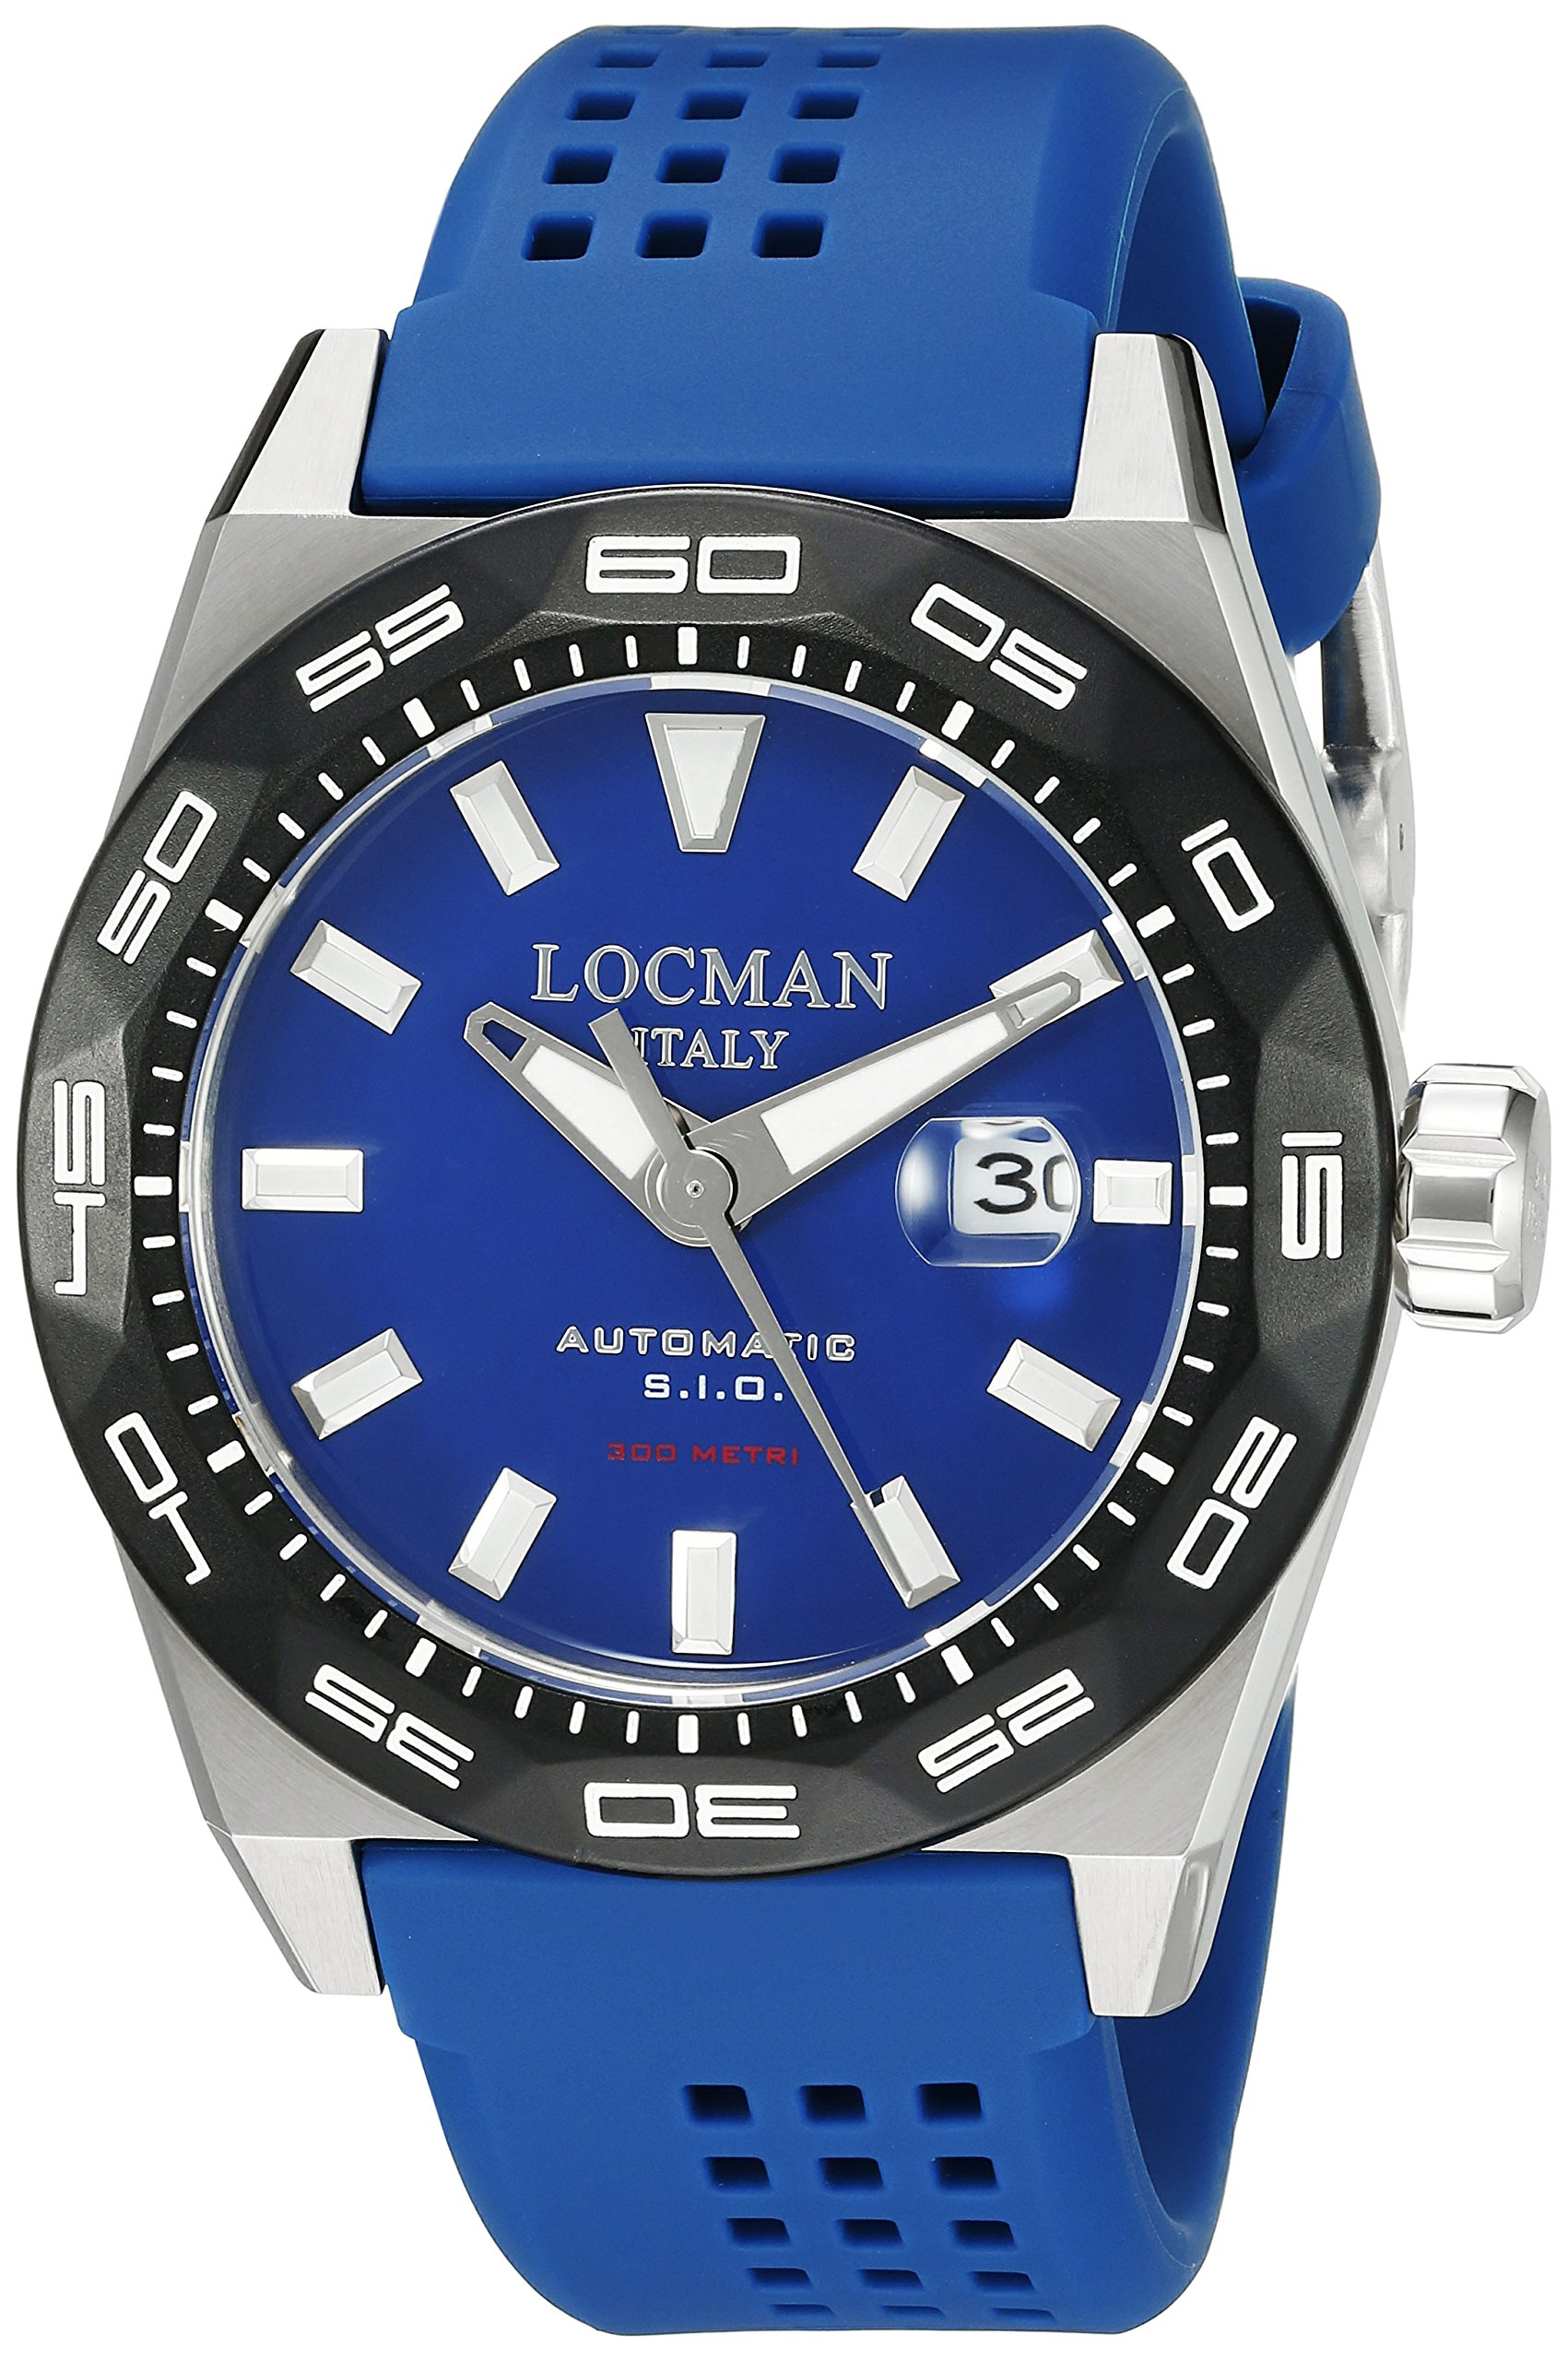 Locman Italy Men's 0215V3-0KBLNKS2B Stealth 300 Metri Analog Display Automatic Self Wind Blue Watch